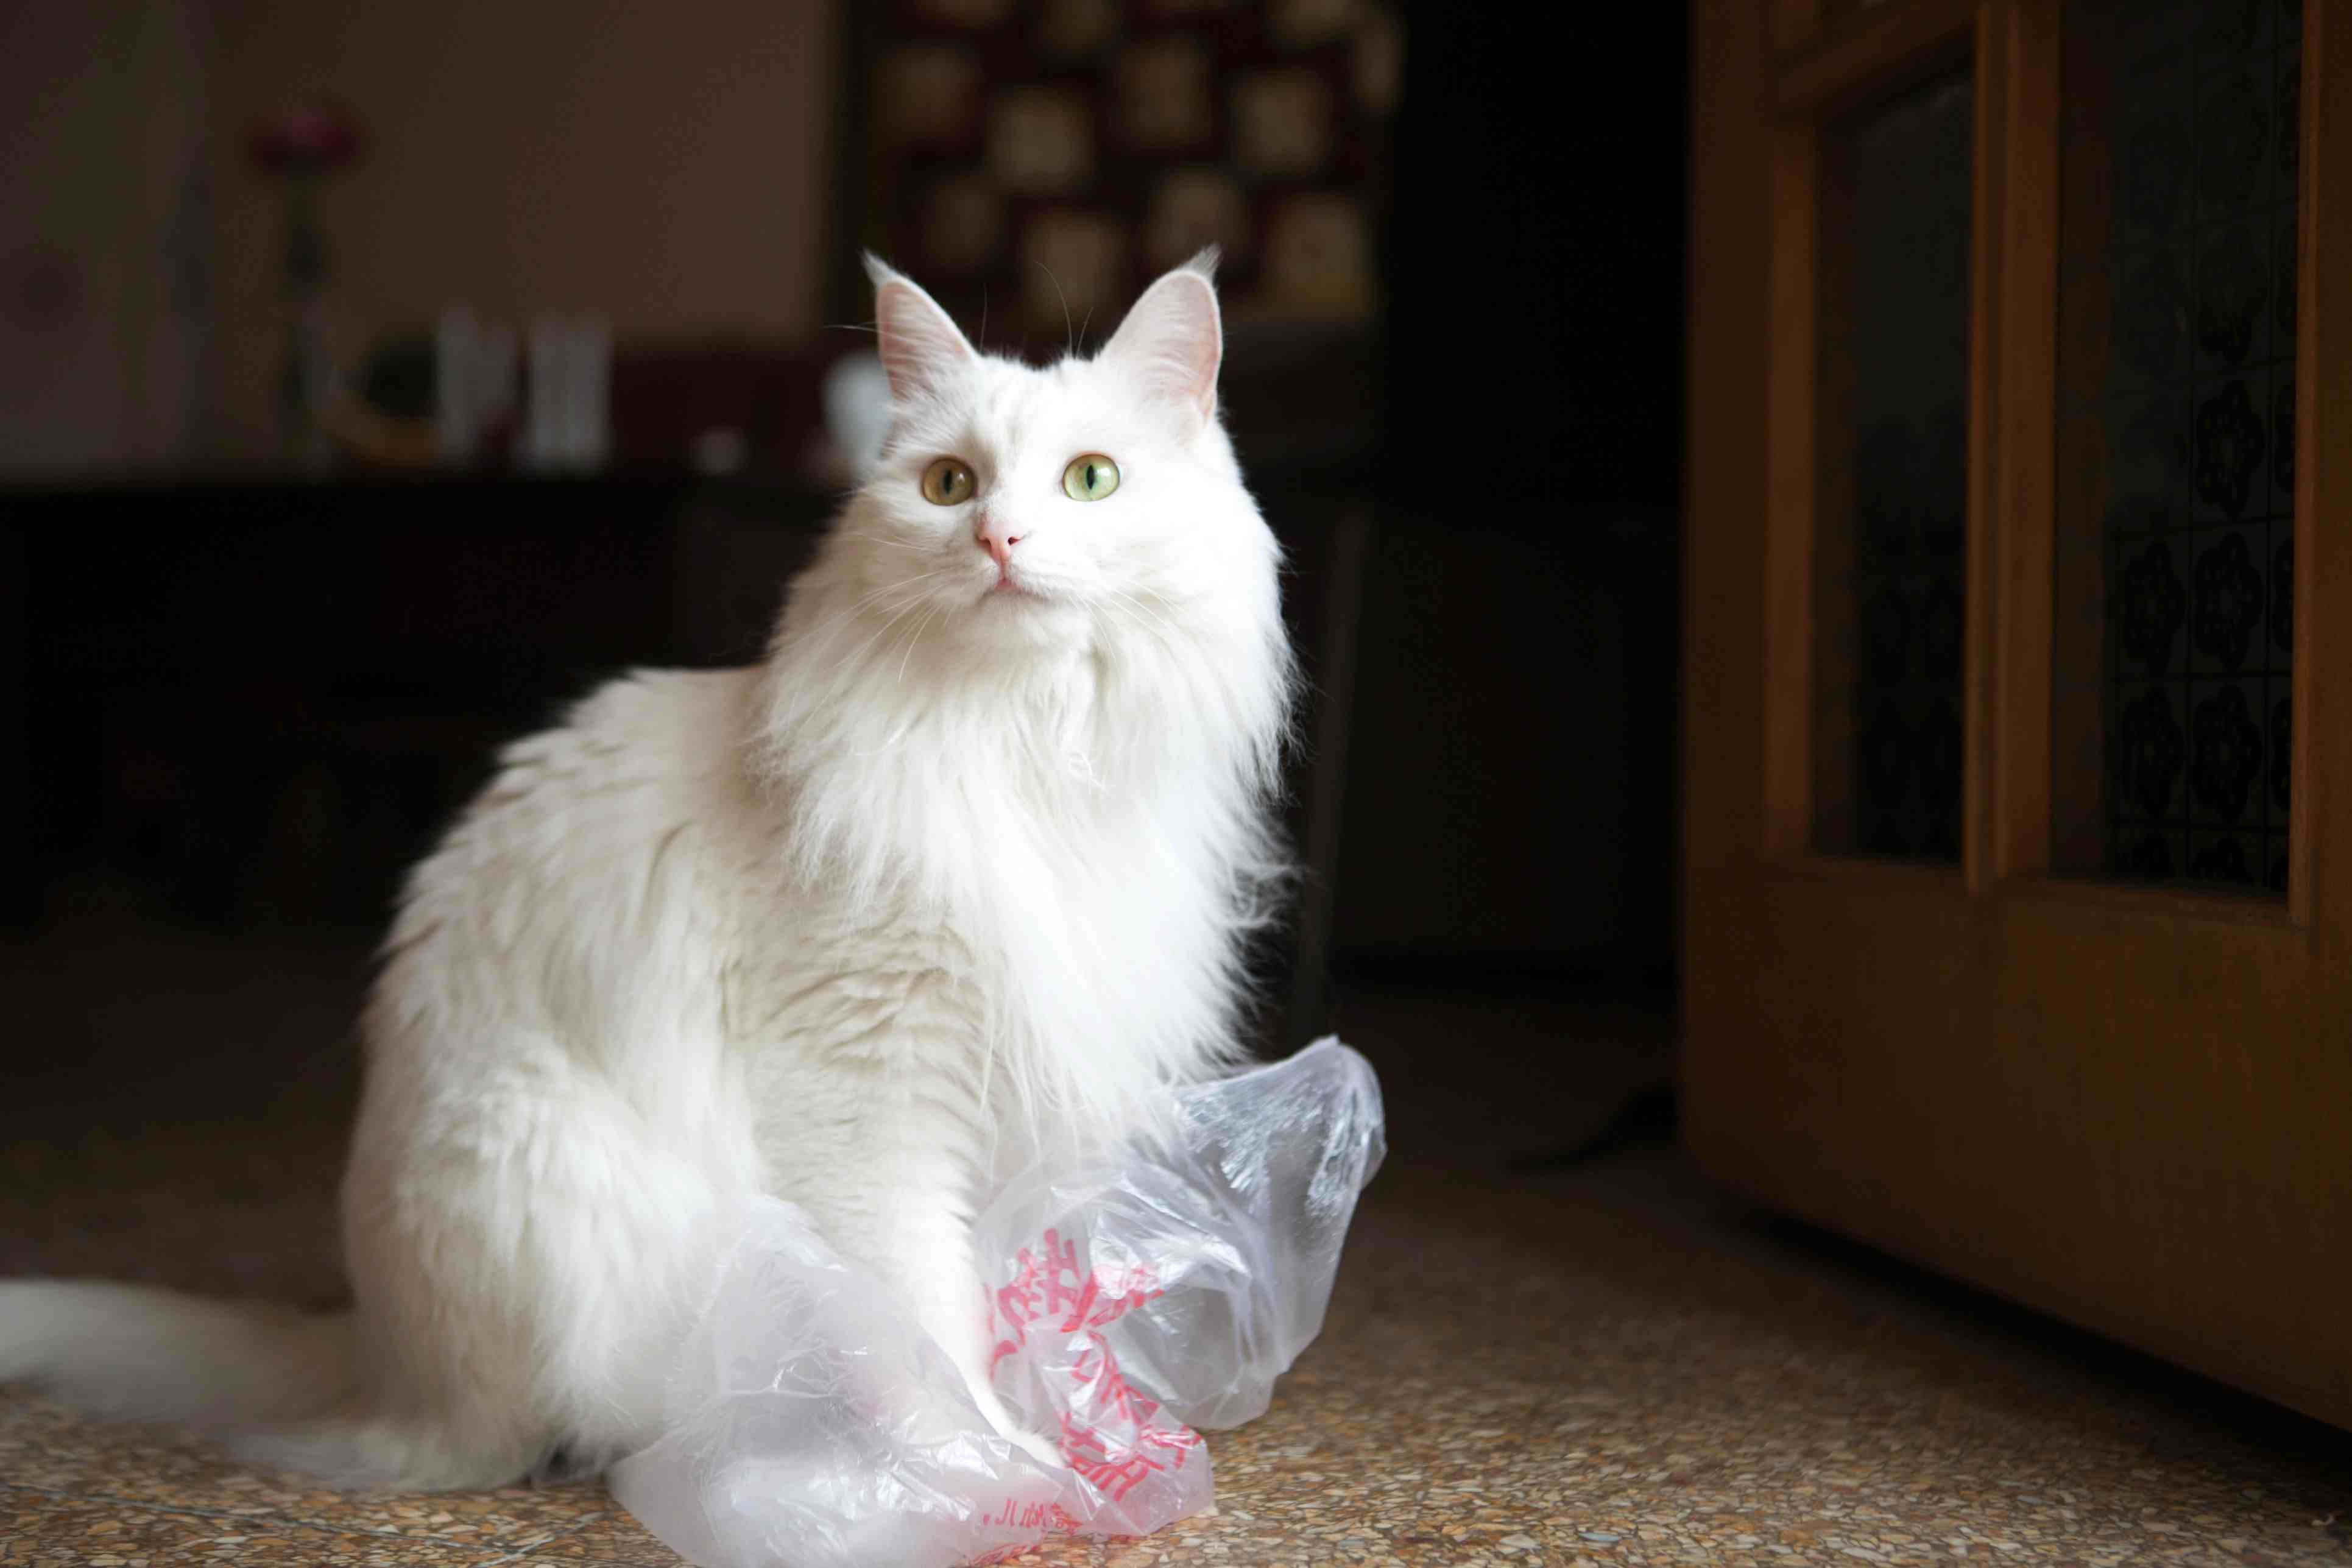 White cat playing with a plastic bag